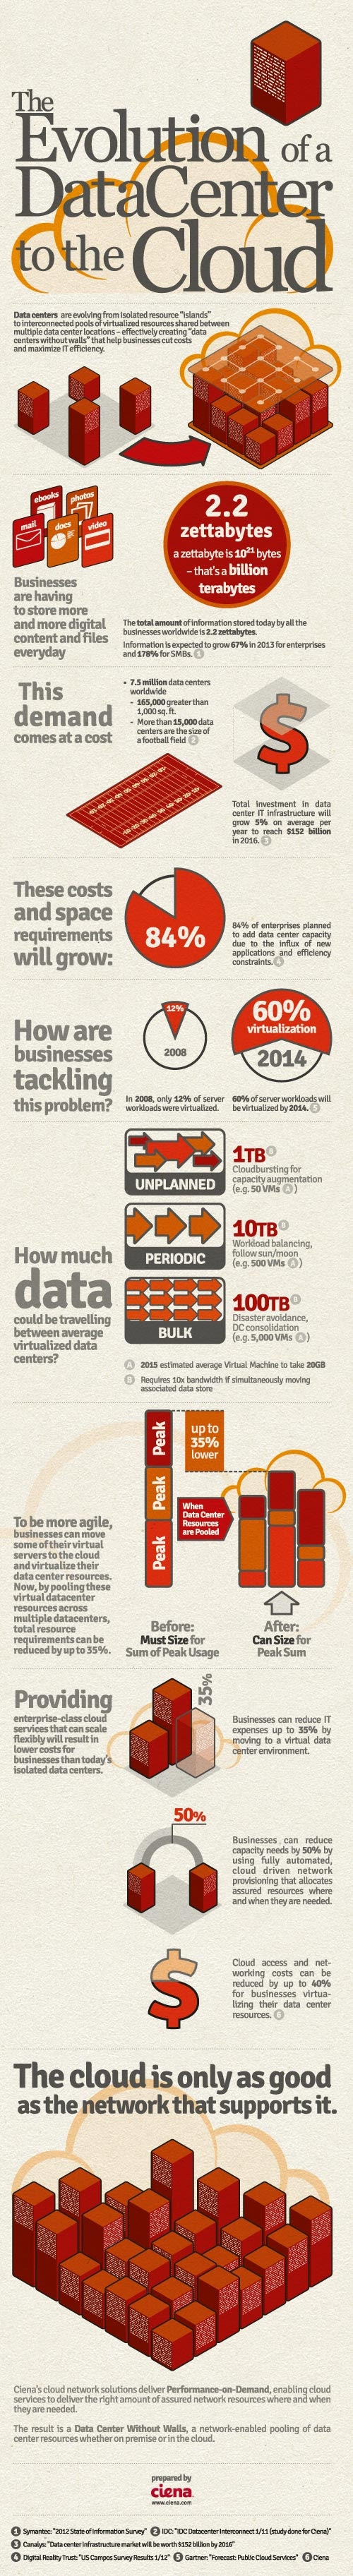 DataCenterIG Final The Evolution of a Data Center to the Cloud   Infographic